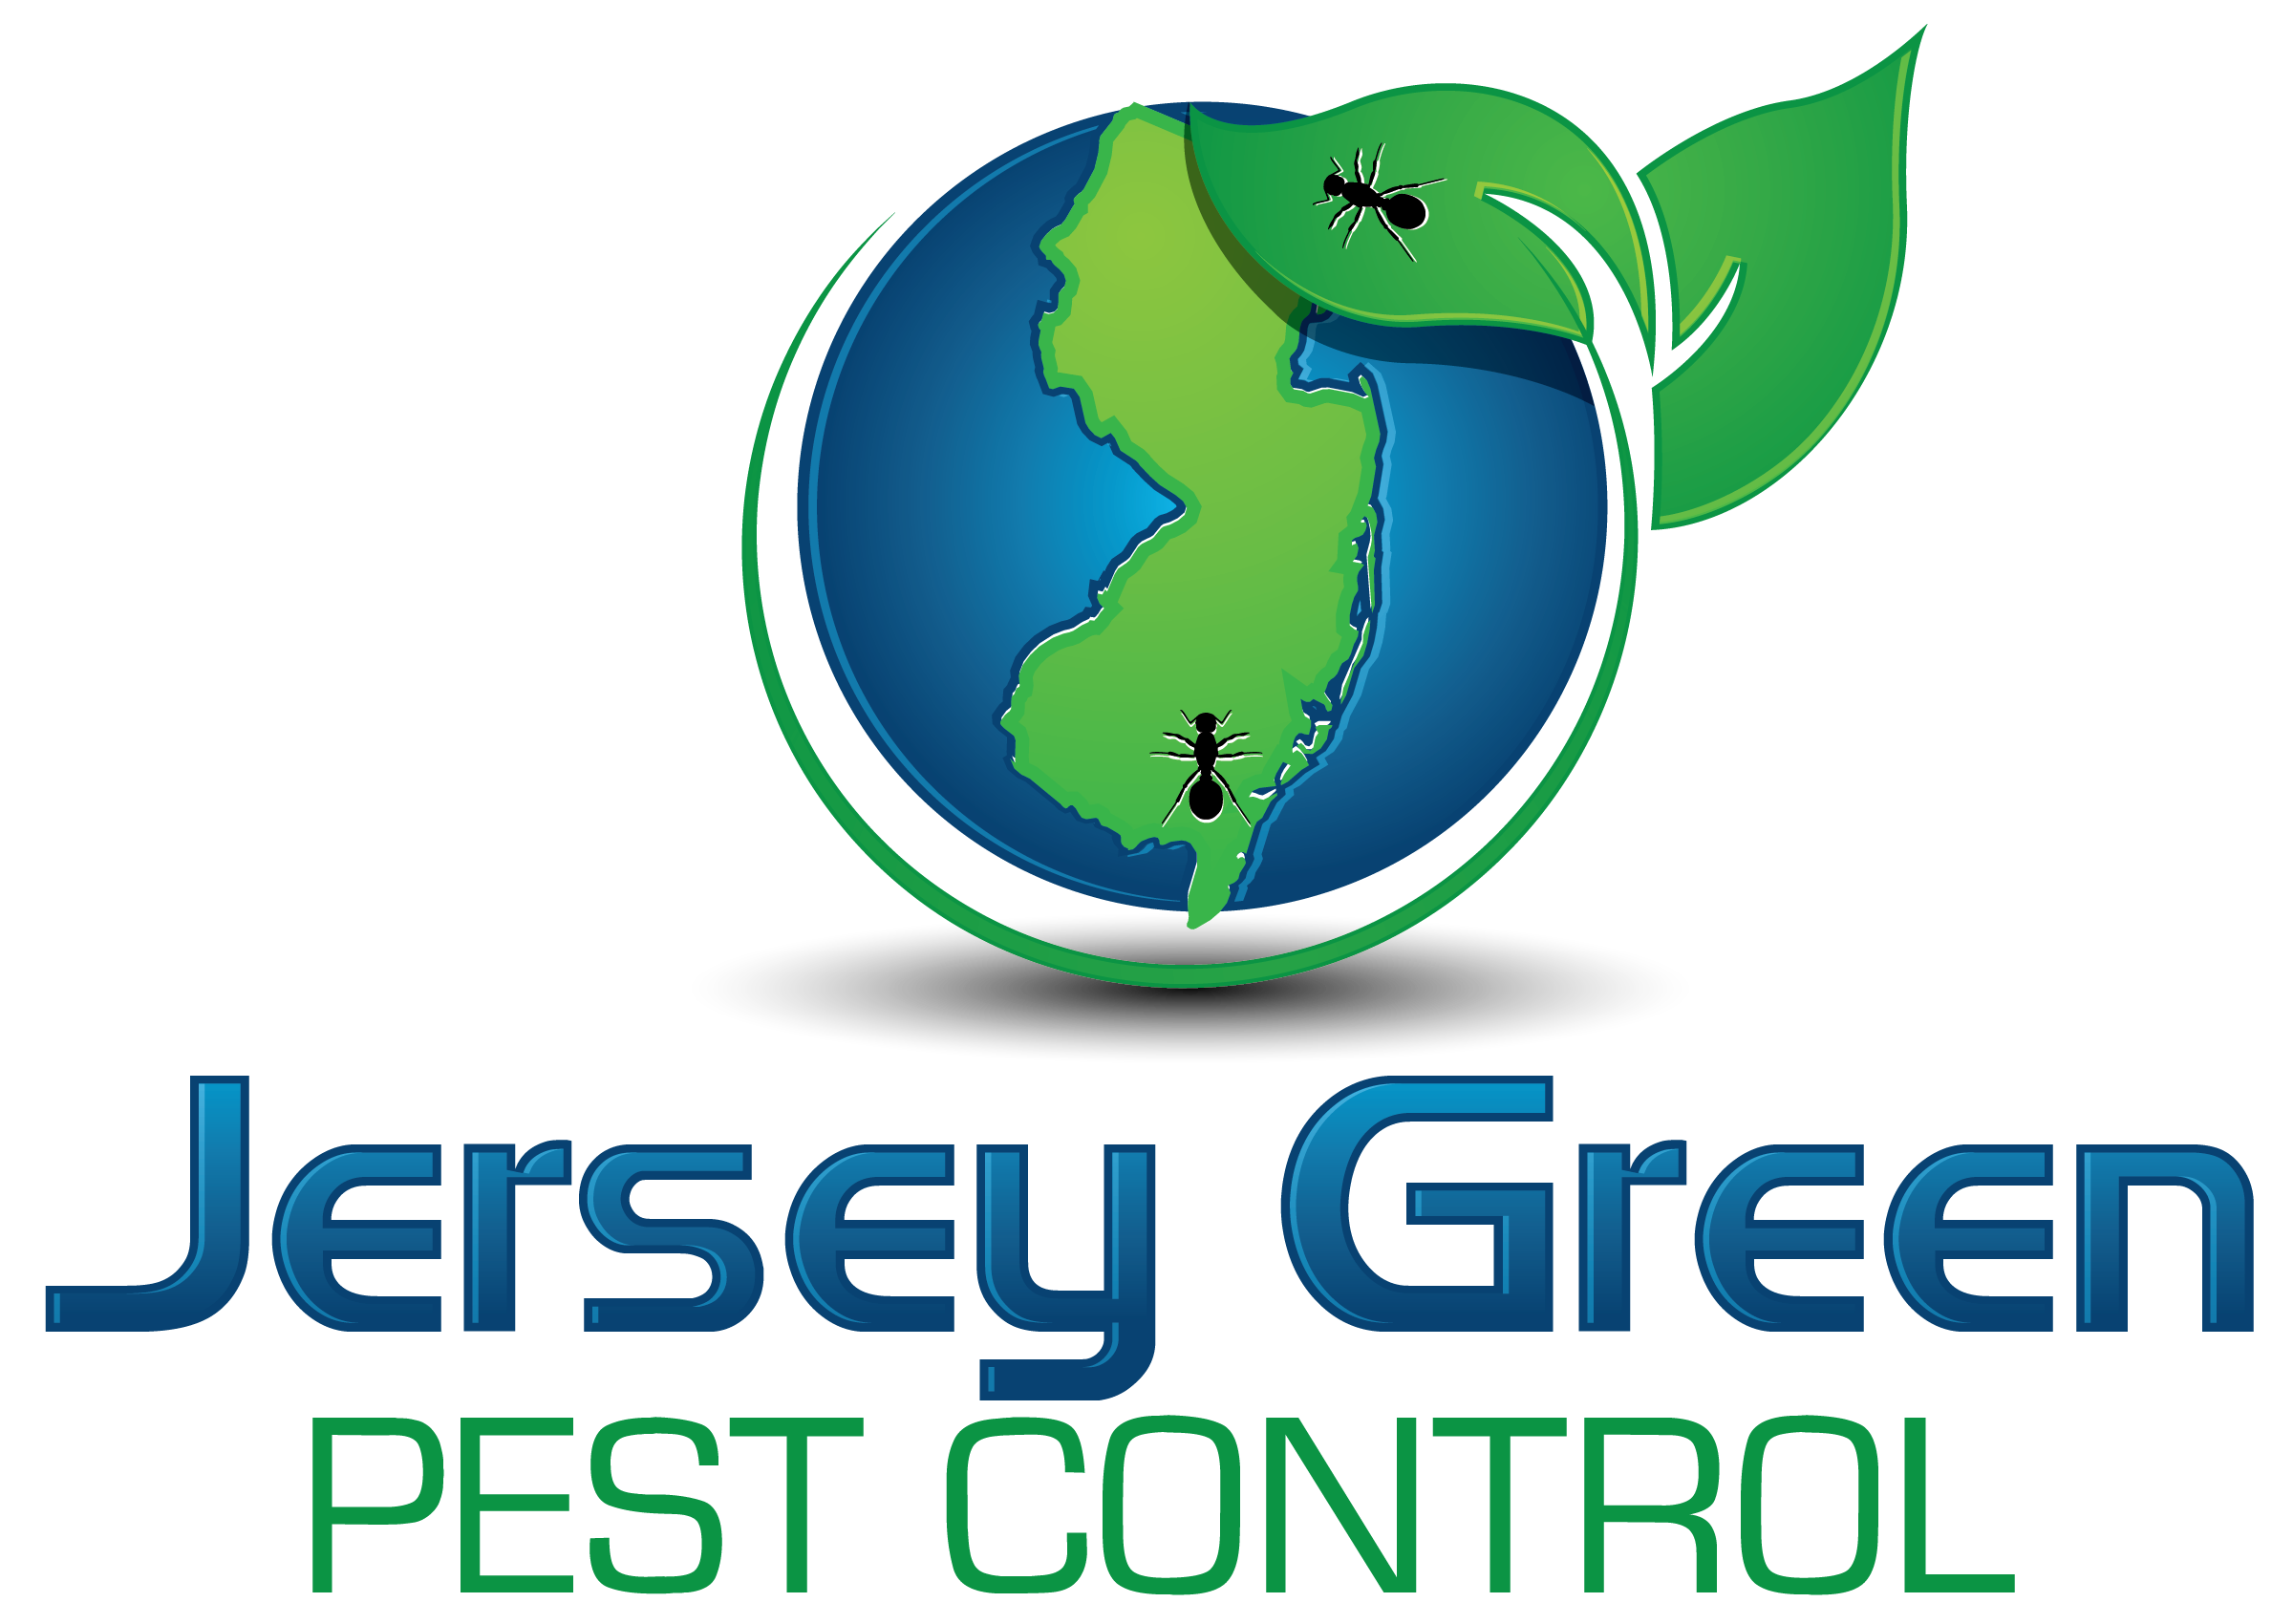 Pest Control Cape May  Here are some general tips for Cape May County pest control from the Natural Resources Defense Council.